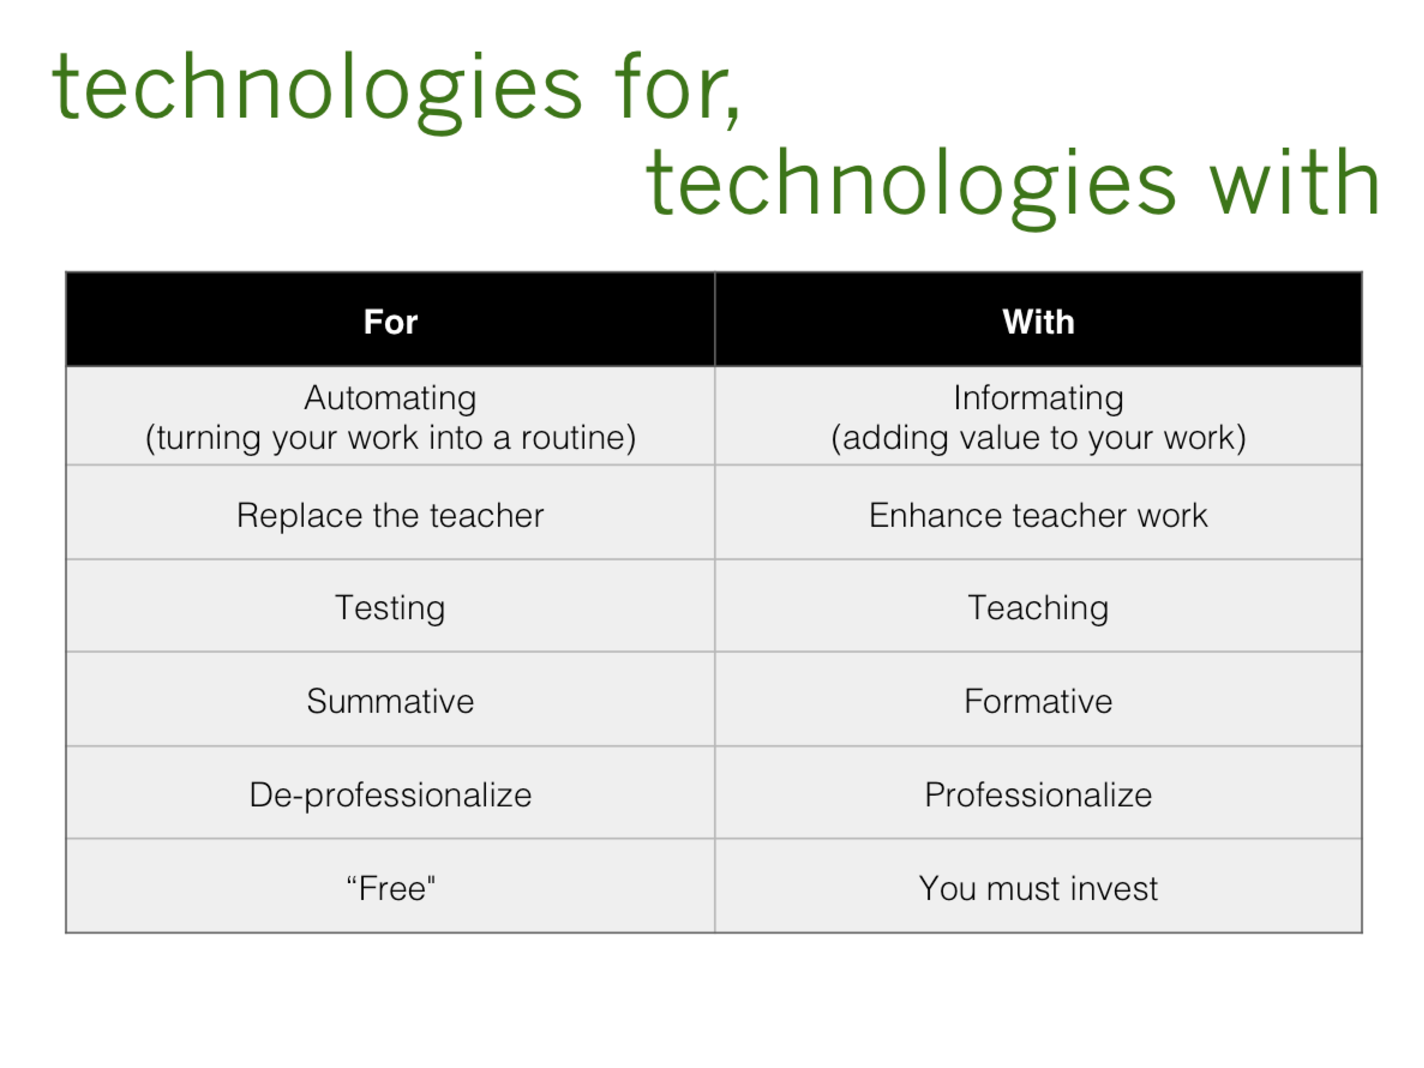 "Characteristics of technologies for (automating, replacing, testing, summative, de-professionalizing, ""free"") education and with (informing, enhancing, teaching, formative, professionalizing, requiring investment) education"